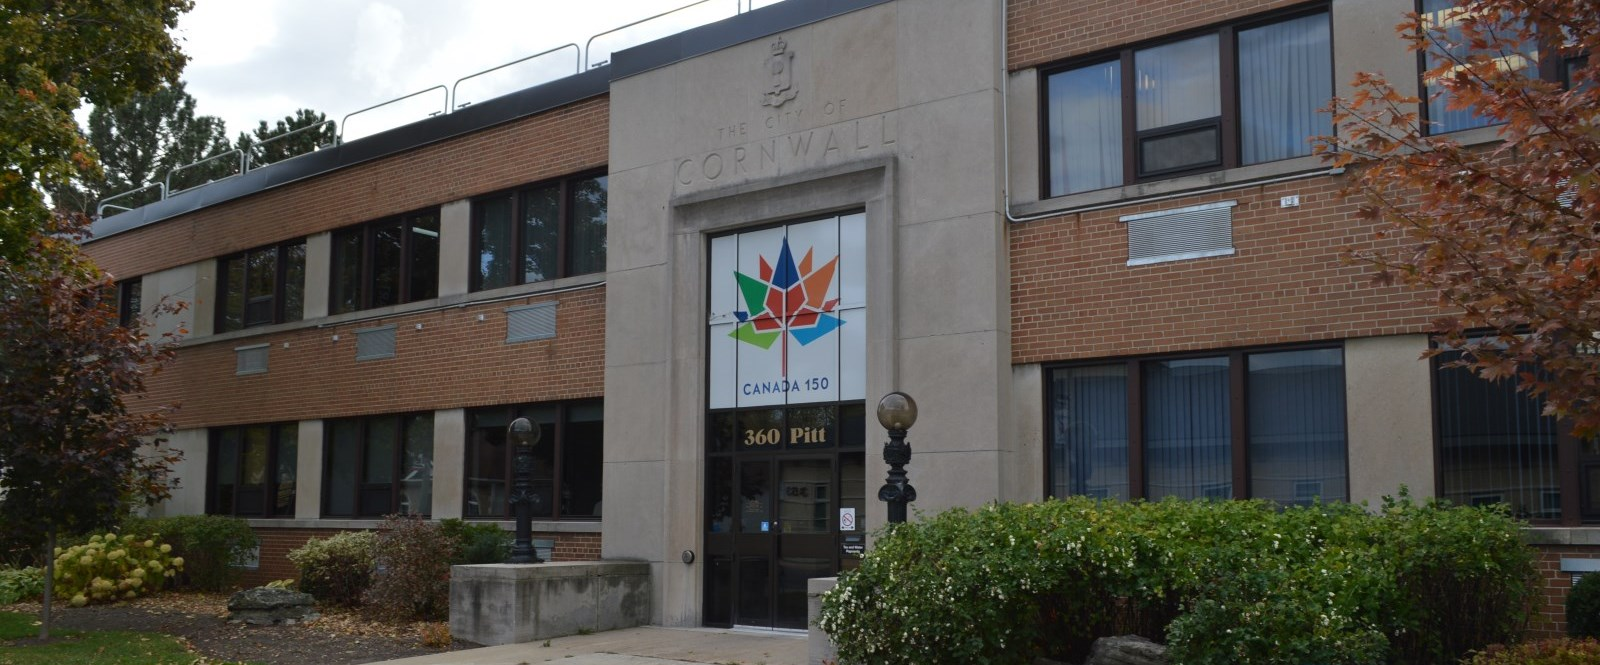 cornwall City Hall with Canada150 logo on front